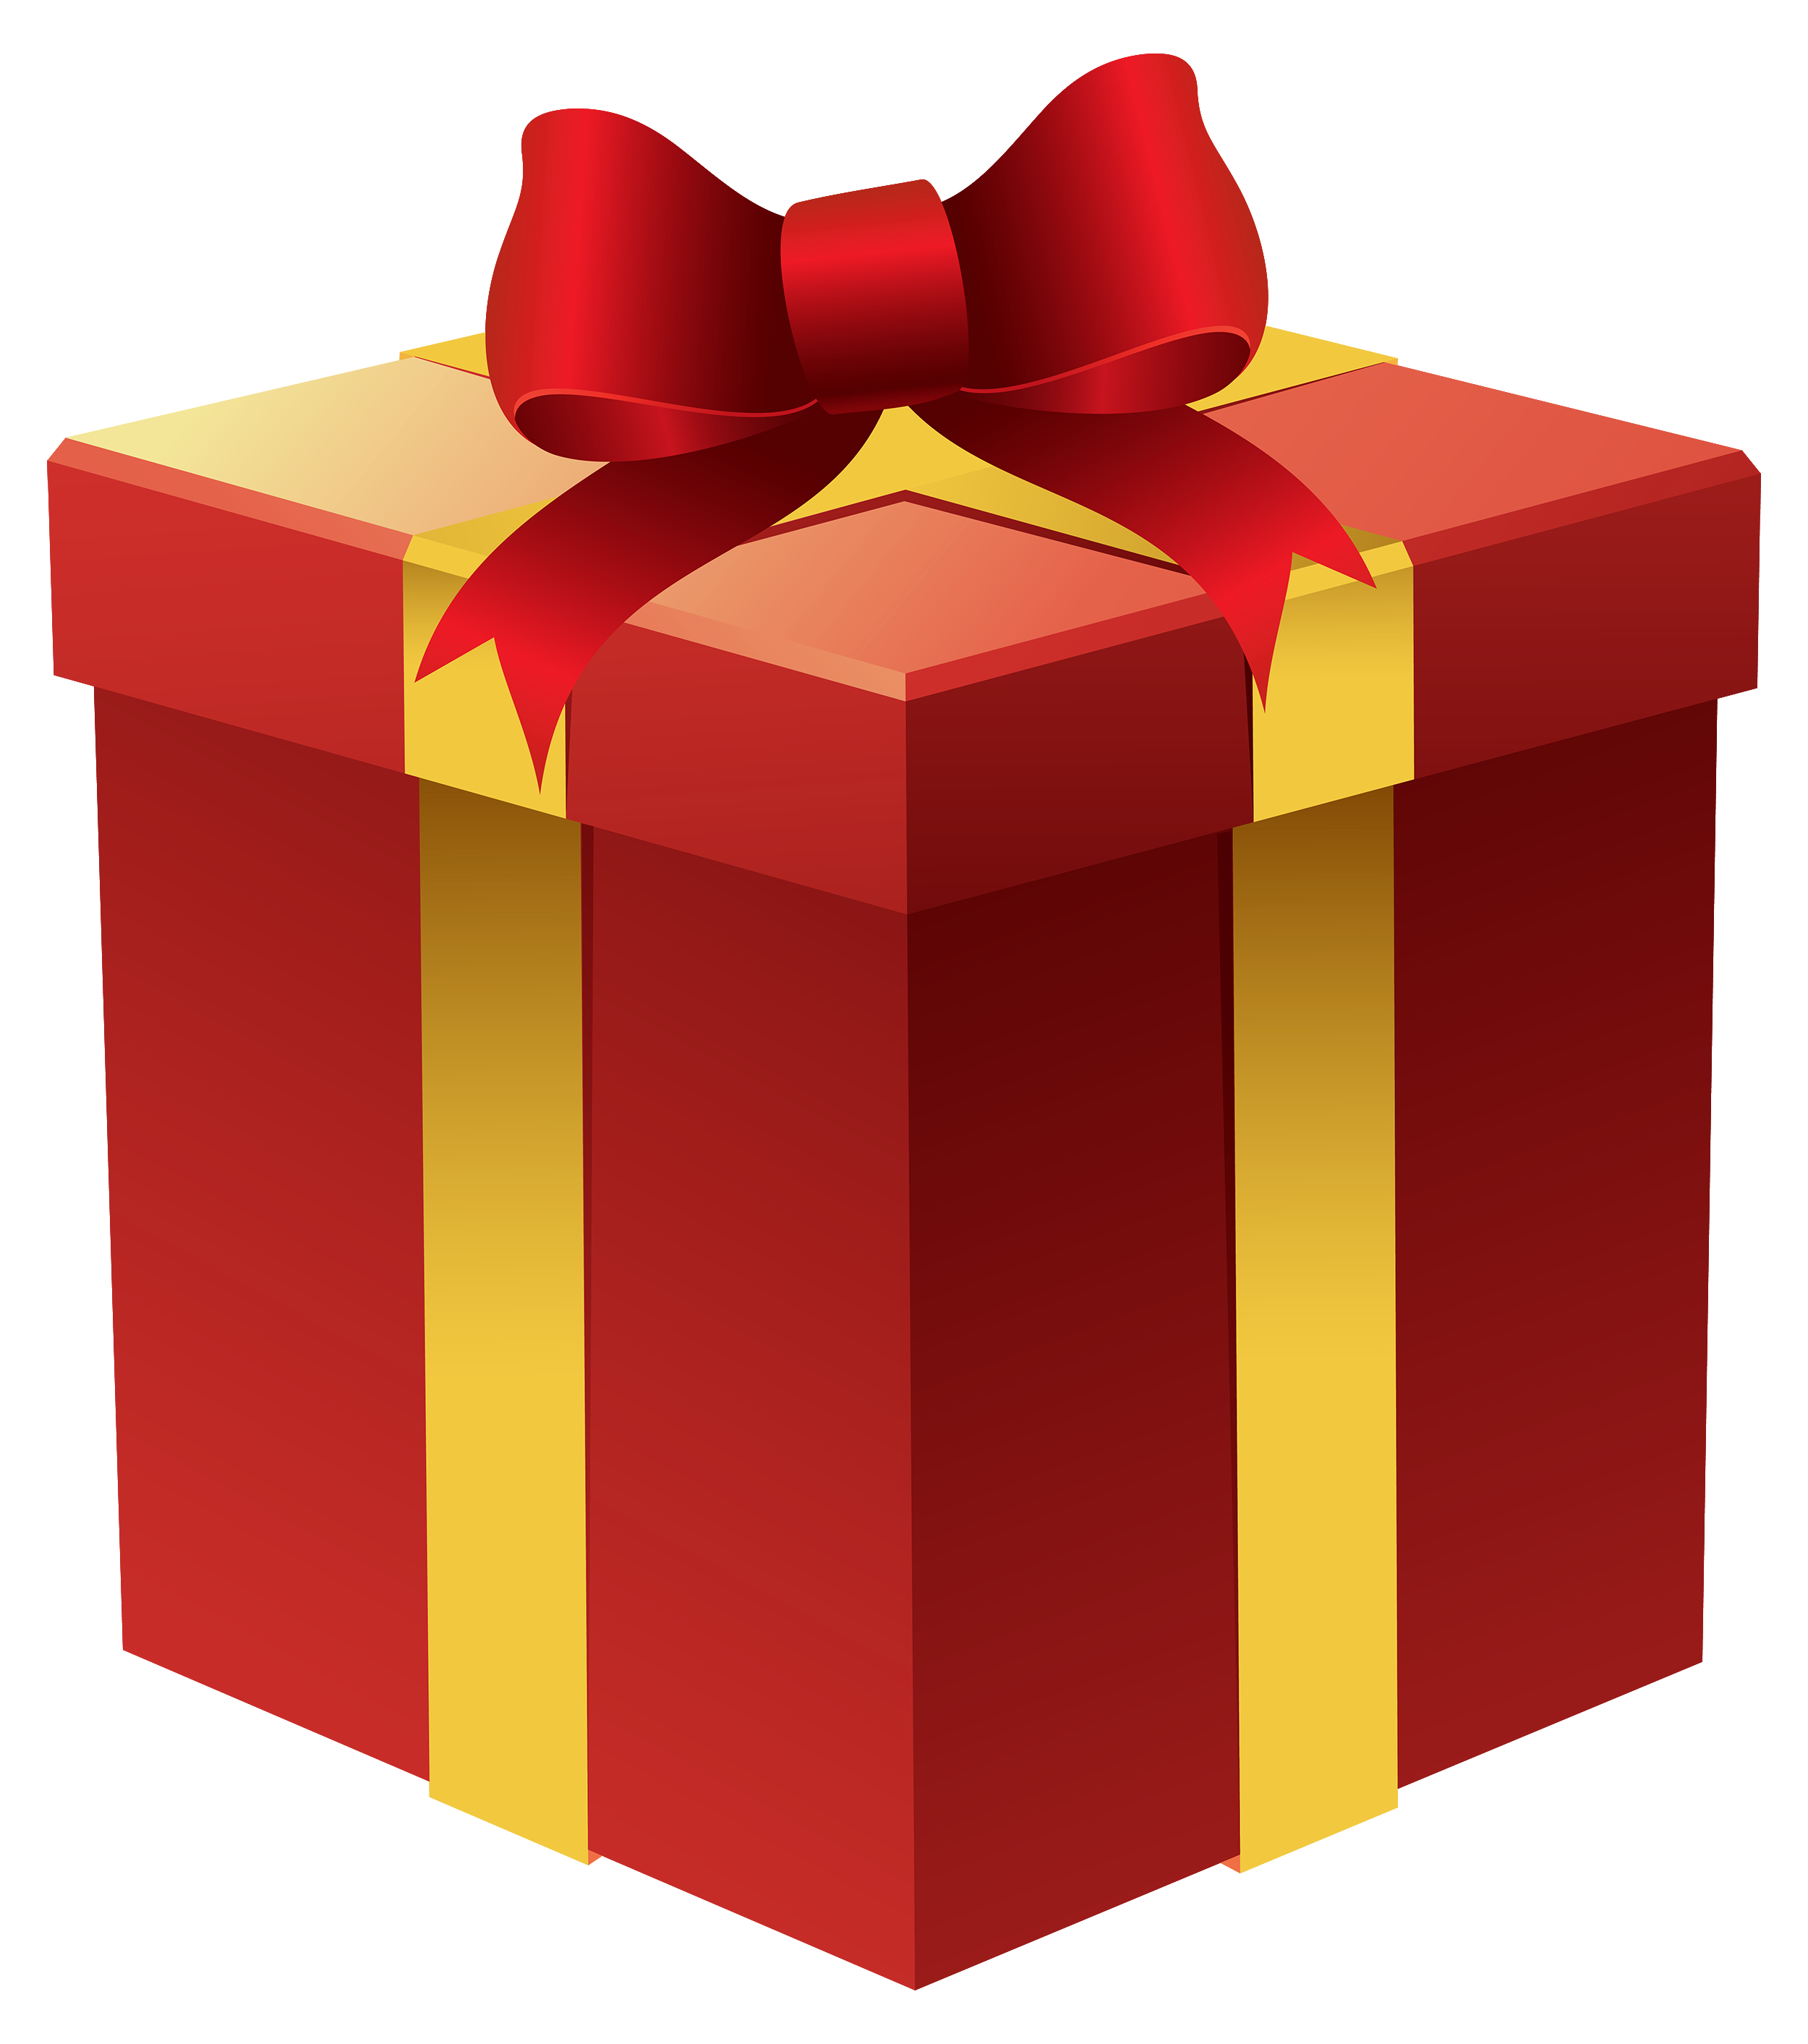 Clipart gift jpg freeuse stock Gift Box in Red PNG Clipart - Best WEB Clipart jpg freeuse stock